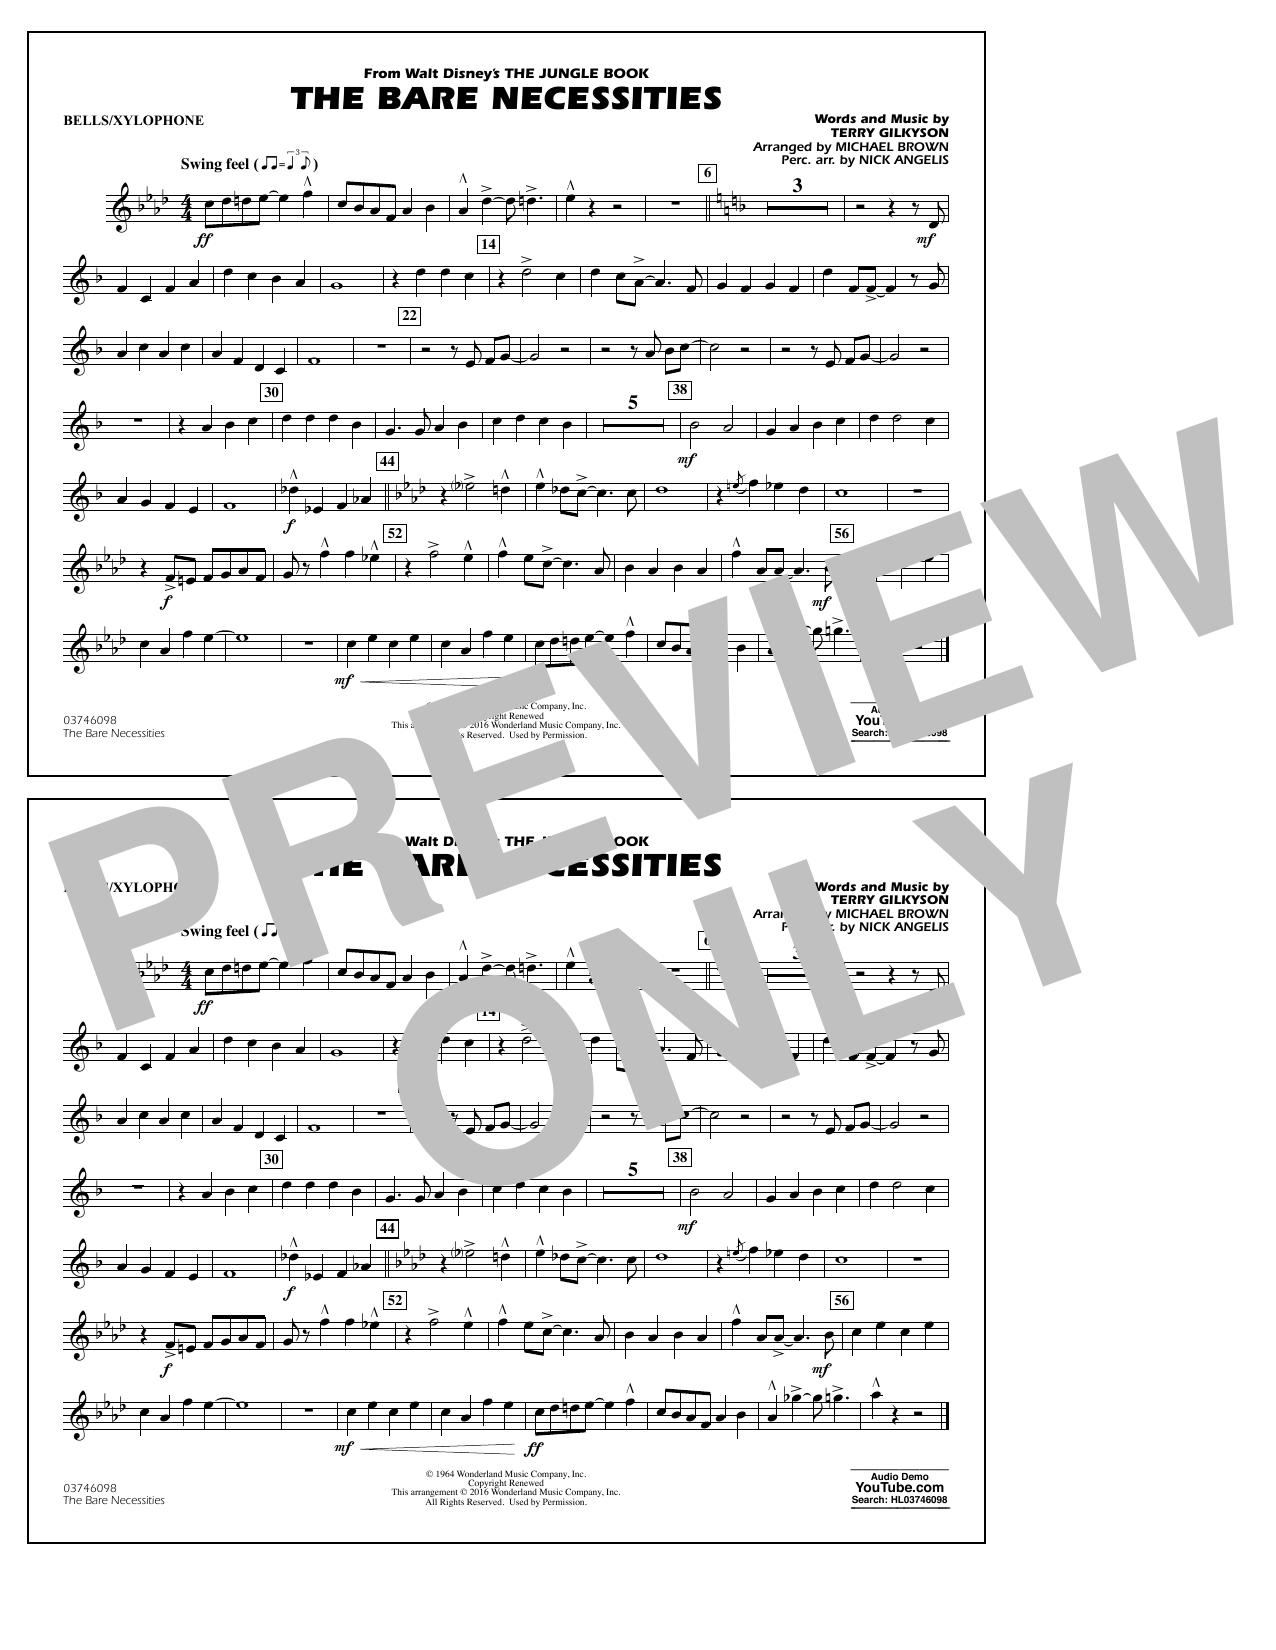 The Bare Necessities (from The Jungle Book) - Bells/Xylophone Sheet Music